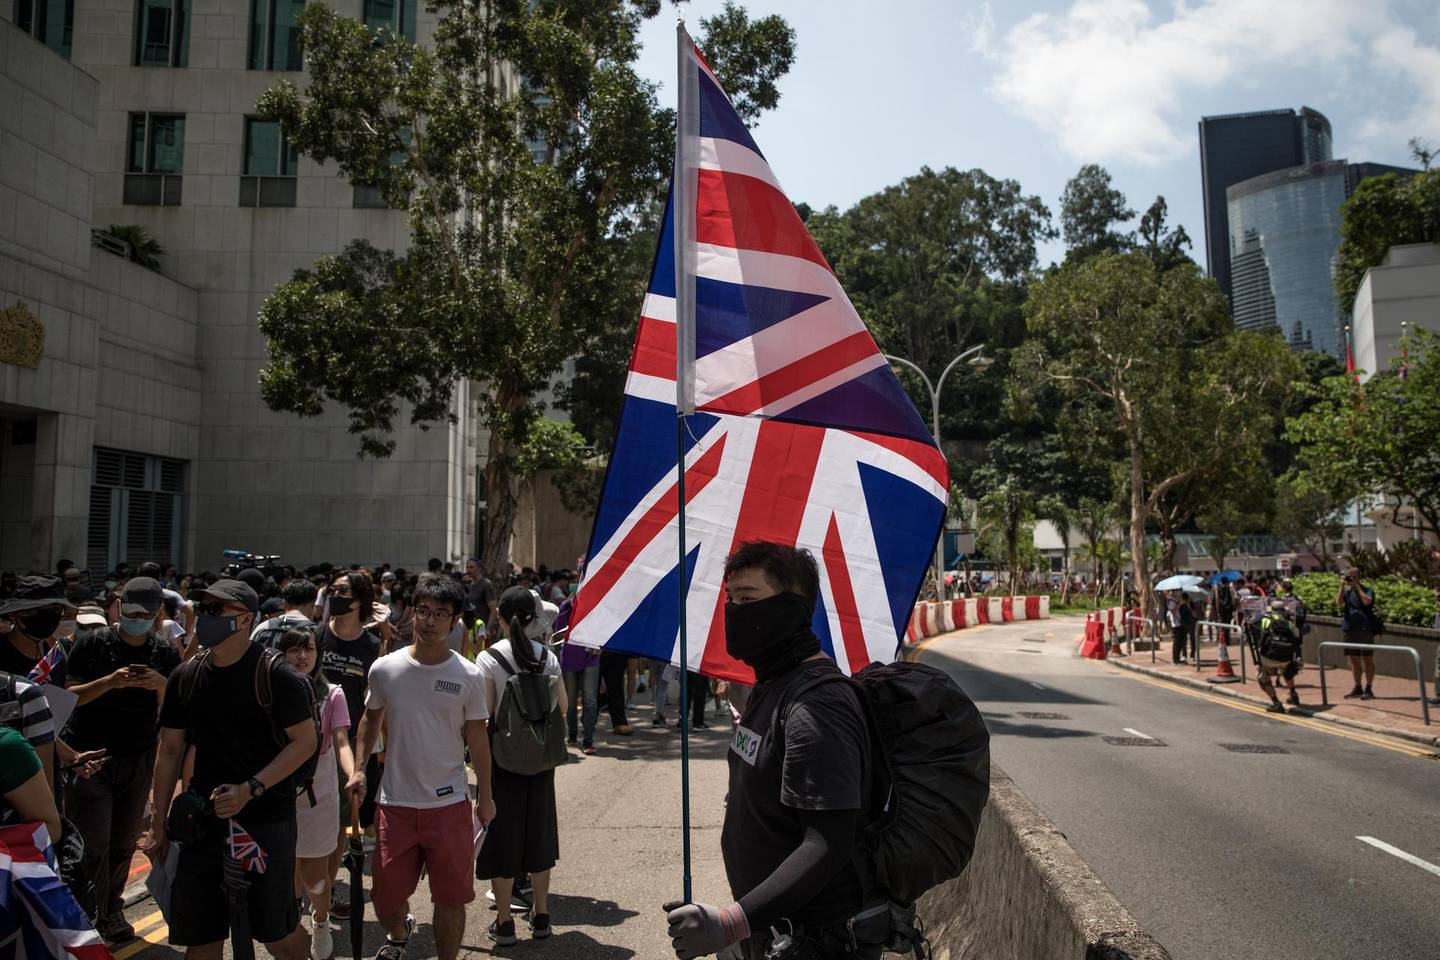 HONG KONG, CHINA - SEPTEMBER 15: Pro-democracy protesters wave  flags and chant slogans outside the UK embassy on September 15, 2019 in Hong Kong, China. Pro-democracy protesters have continued demonstrations across Hong Kong, calling for the city's Chief Executive Carrie Lam to immediately meet the rest of their demands, including an independent inquiry into police brutality, the retraction of the word riot to describe the rallies, and genuine universal suffrage, as the territory faces a leadership crisis. (Photo by Chris McGrath/Getty Images)